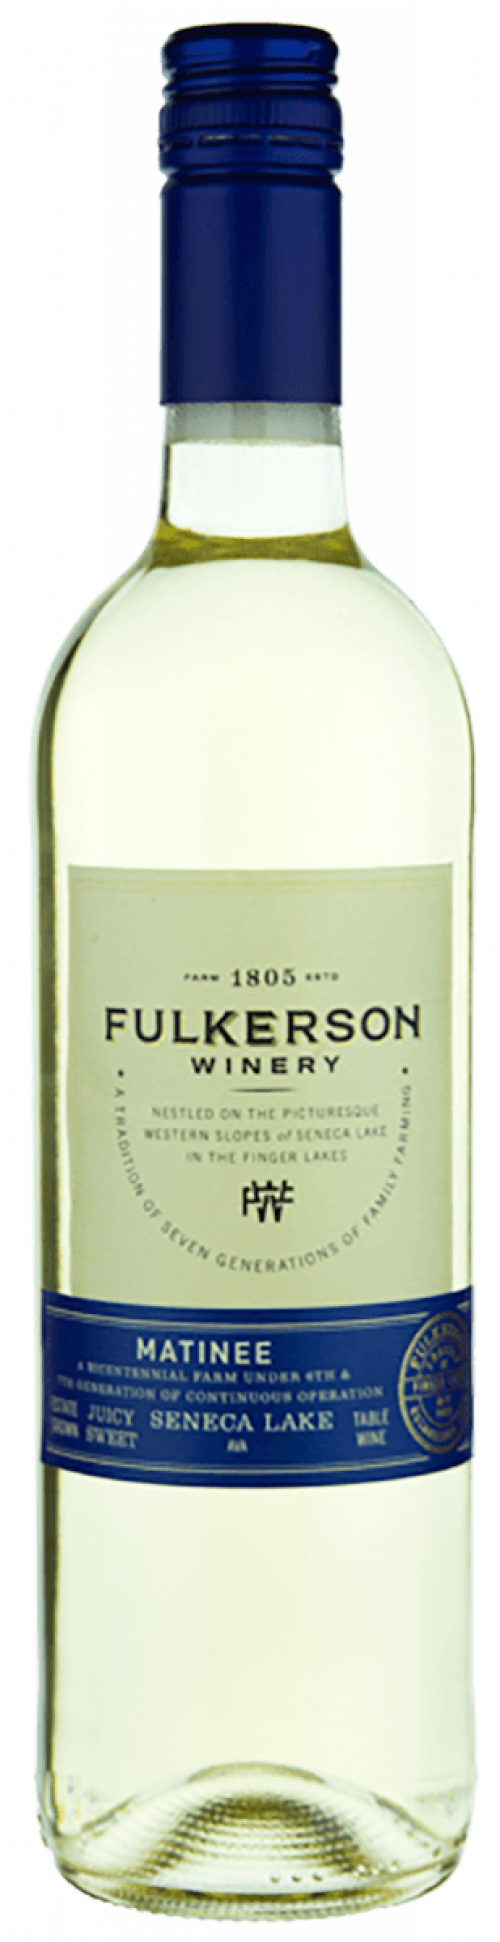 Fulkerson Matinee 750ml NV